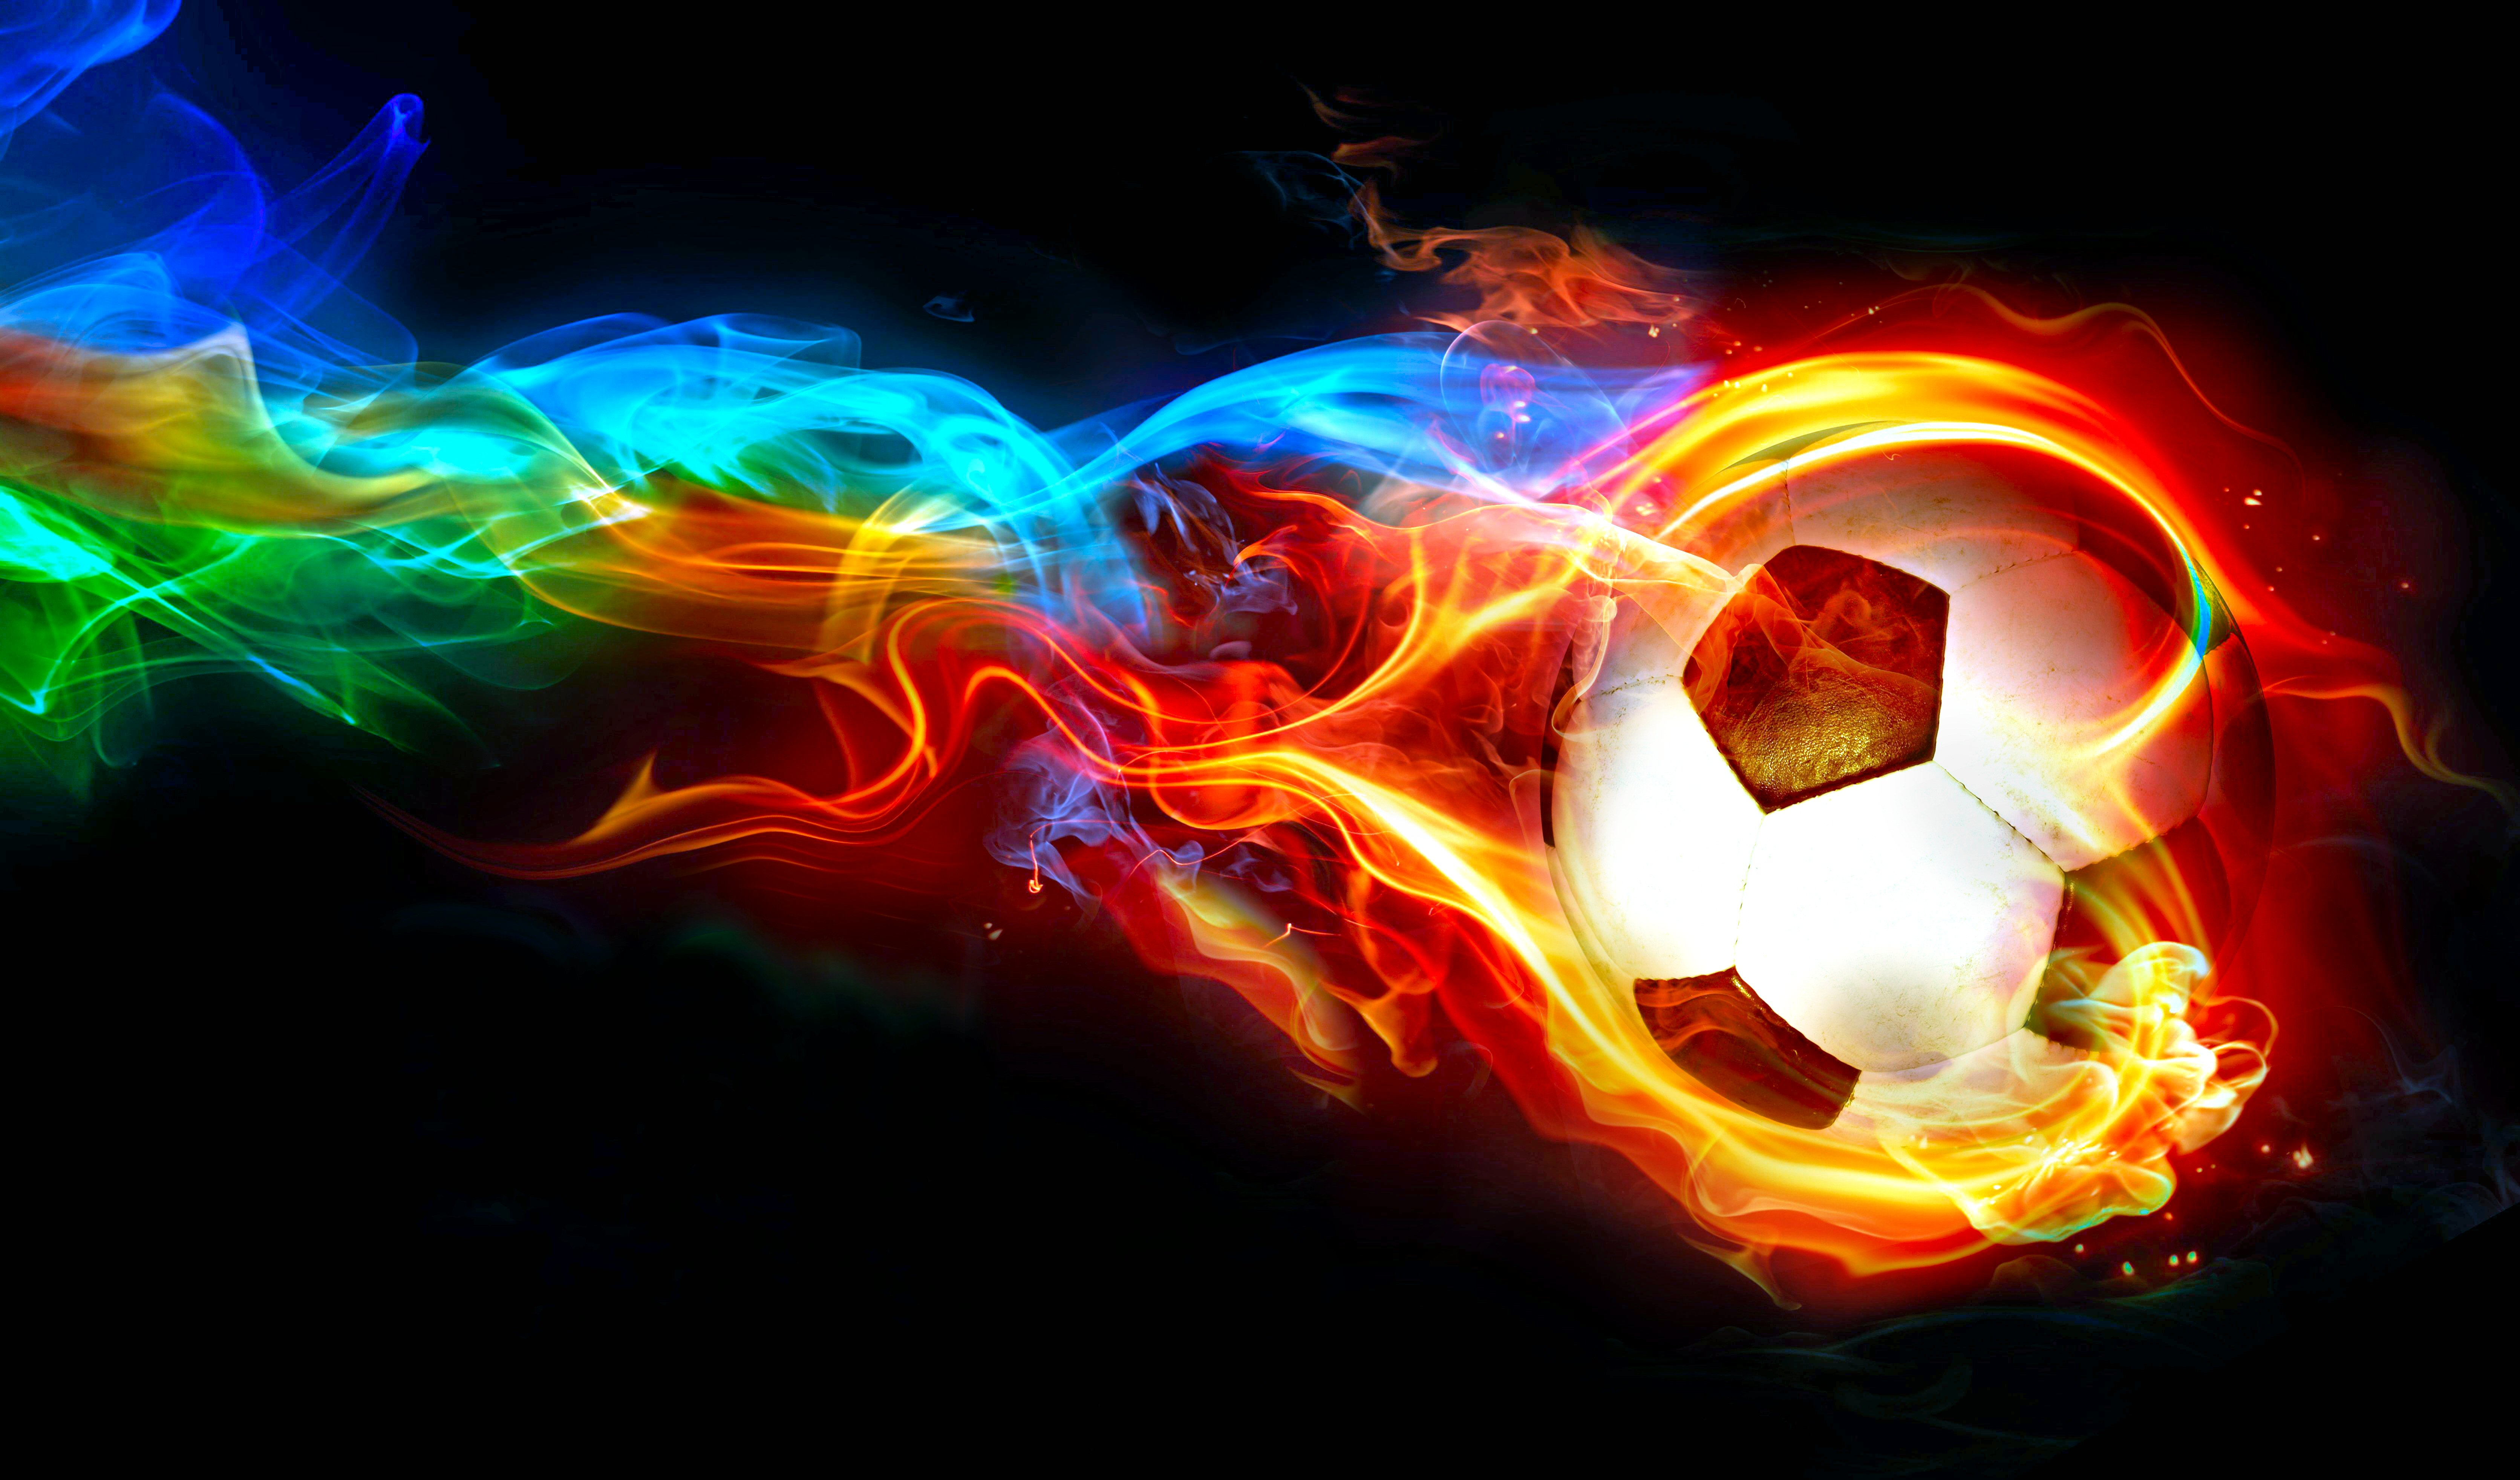 6686x3926 - Soccer Wallpapers 17